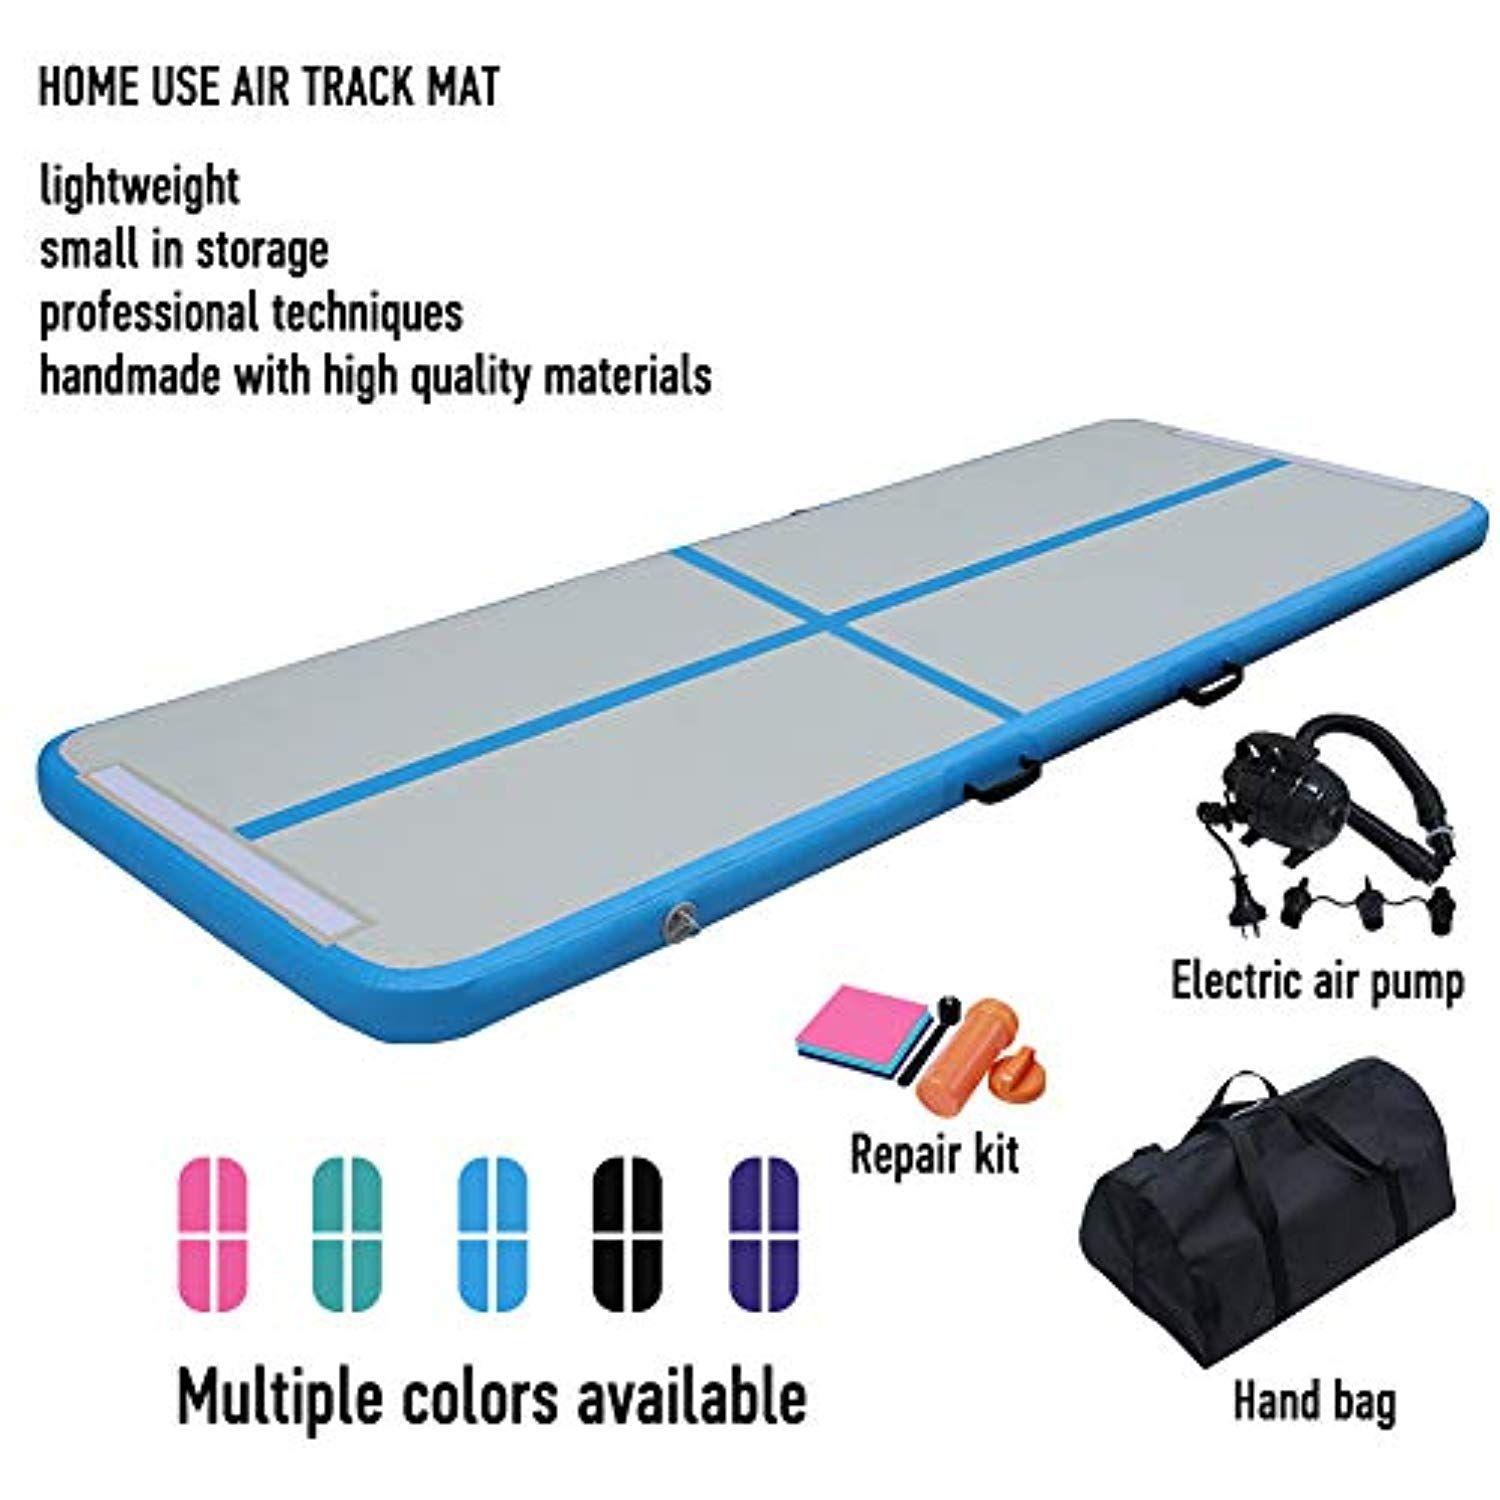 Dairtrack 10ft Air Track Tumbling Mat Inflatable Gymnastics Airtrack Mat Air Floor Mat With Electric Air Pump For Training Tumble Mats Cheerleading Air Pump